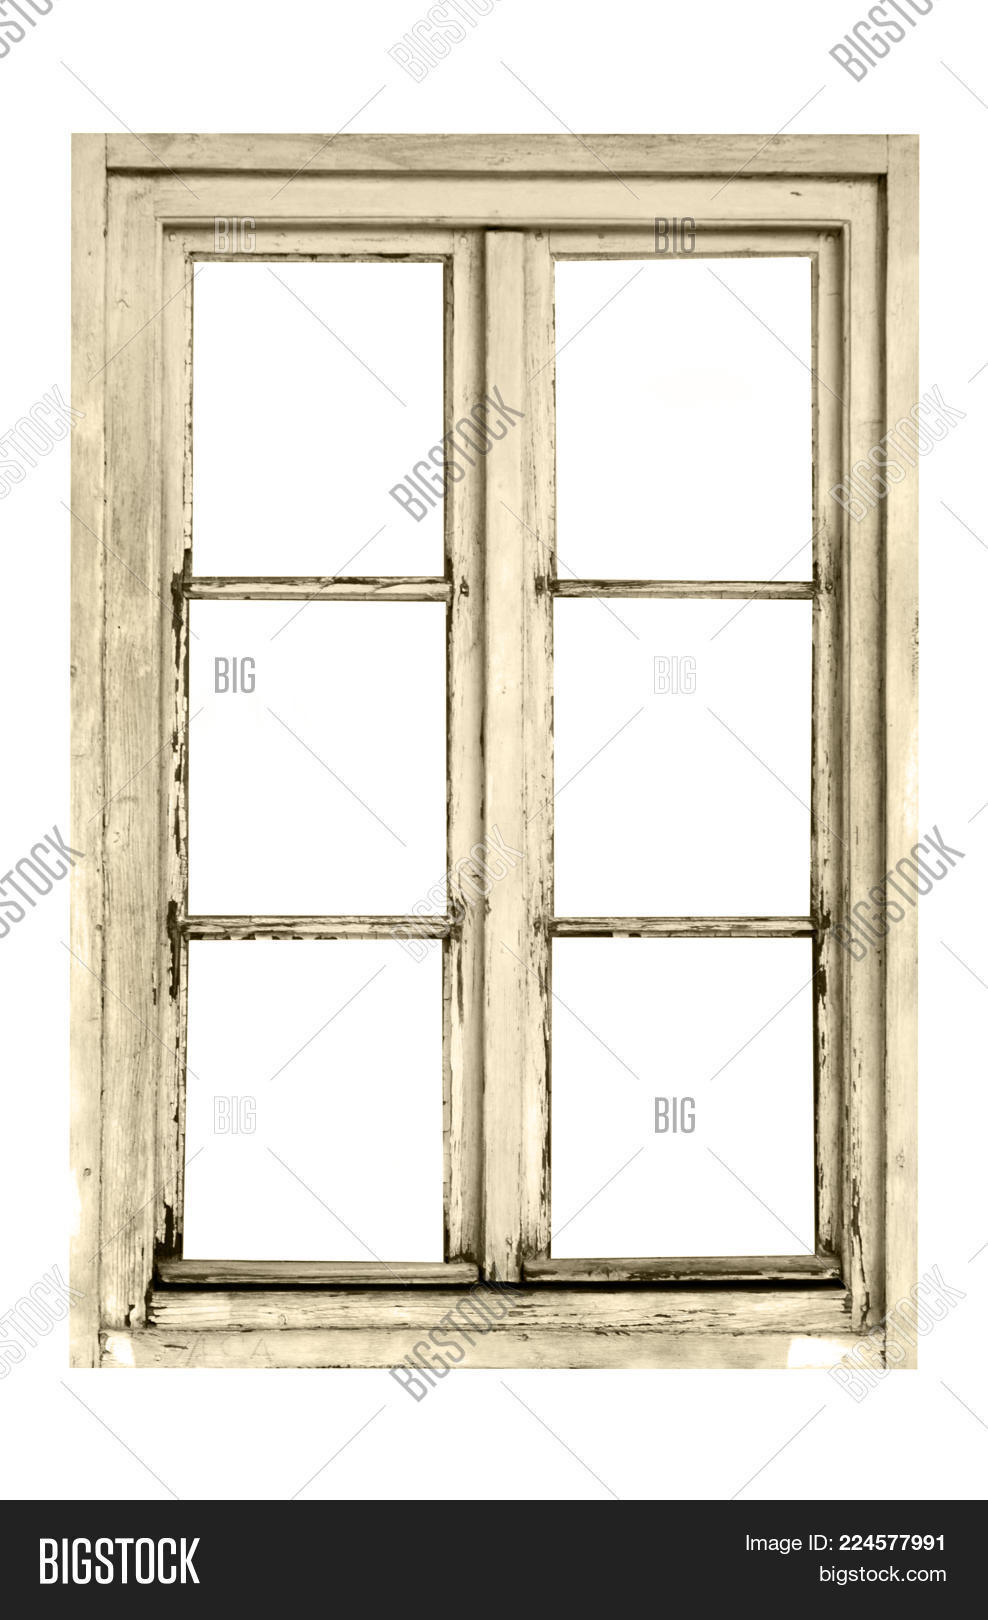 Old Wooden Window Six Image & Photo (Free Trial) | Bigstock